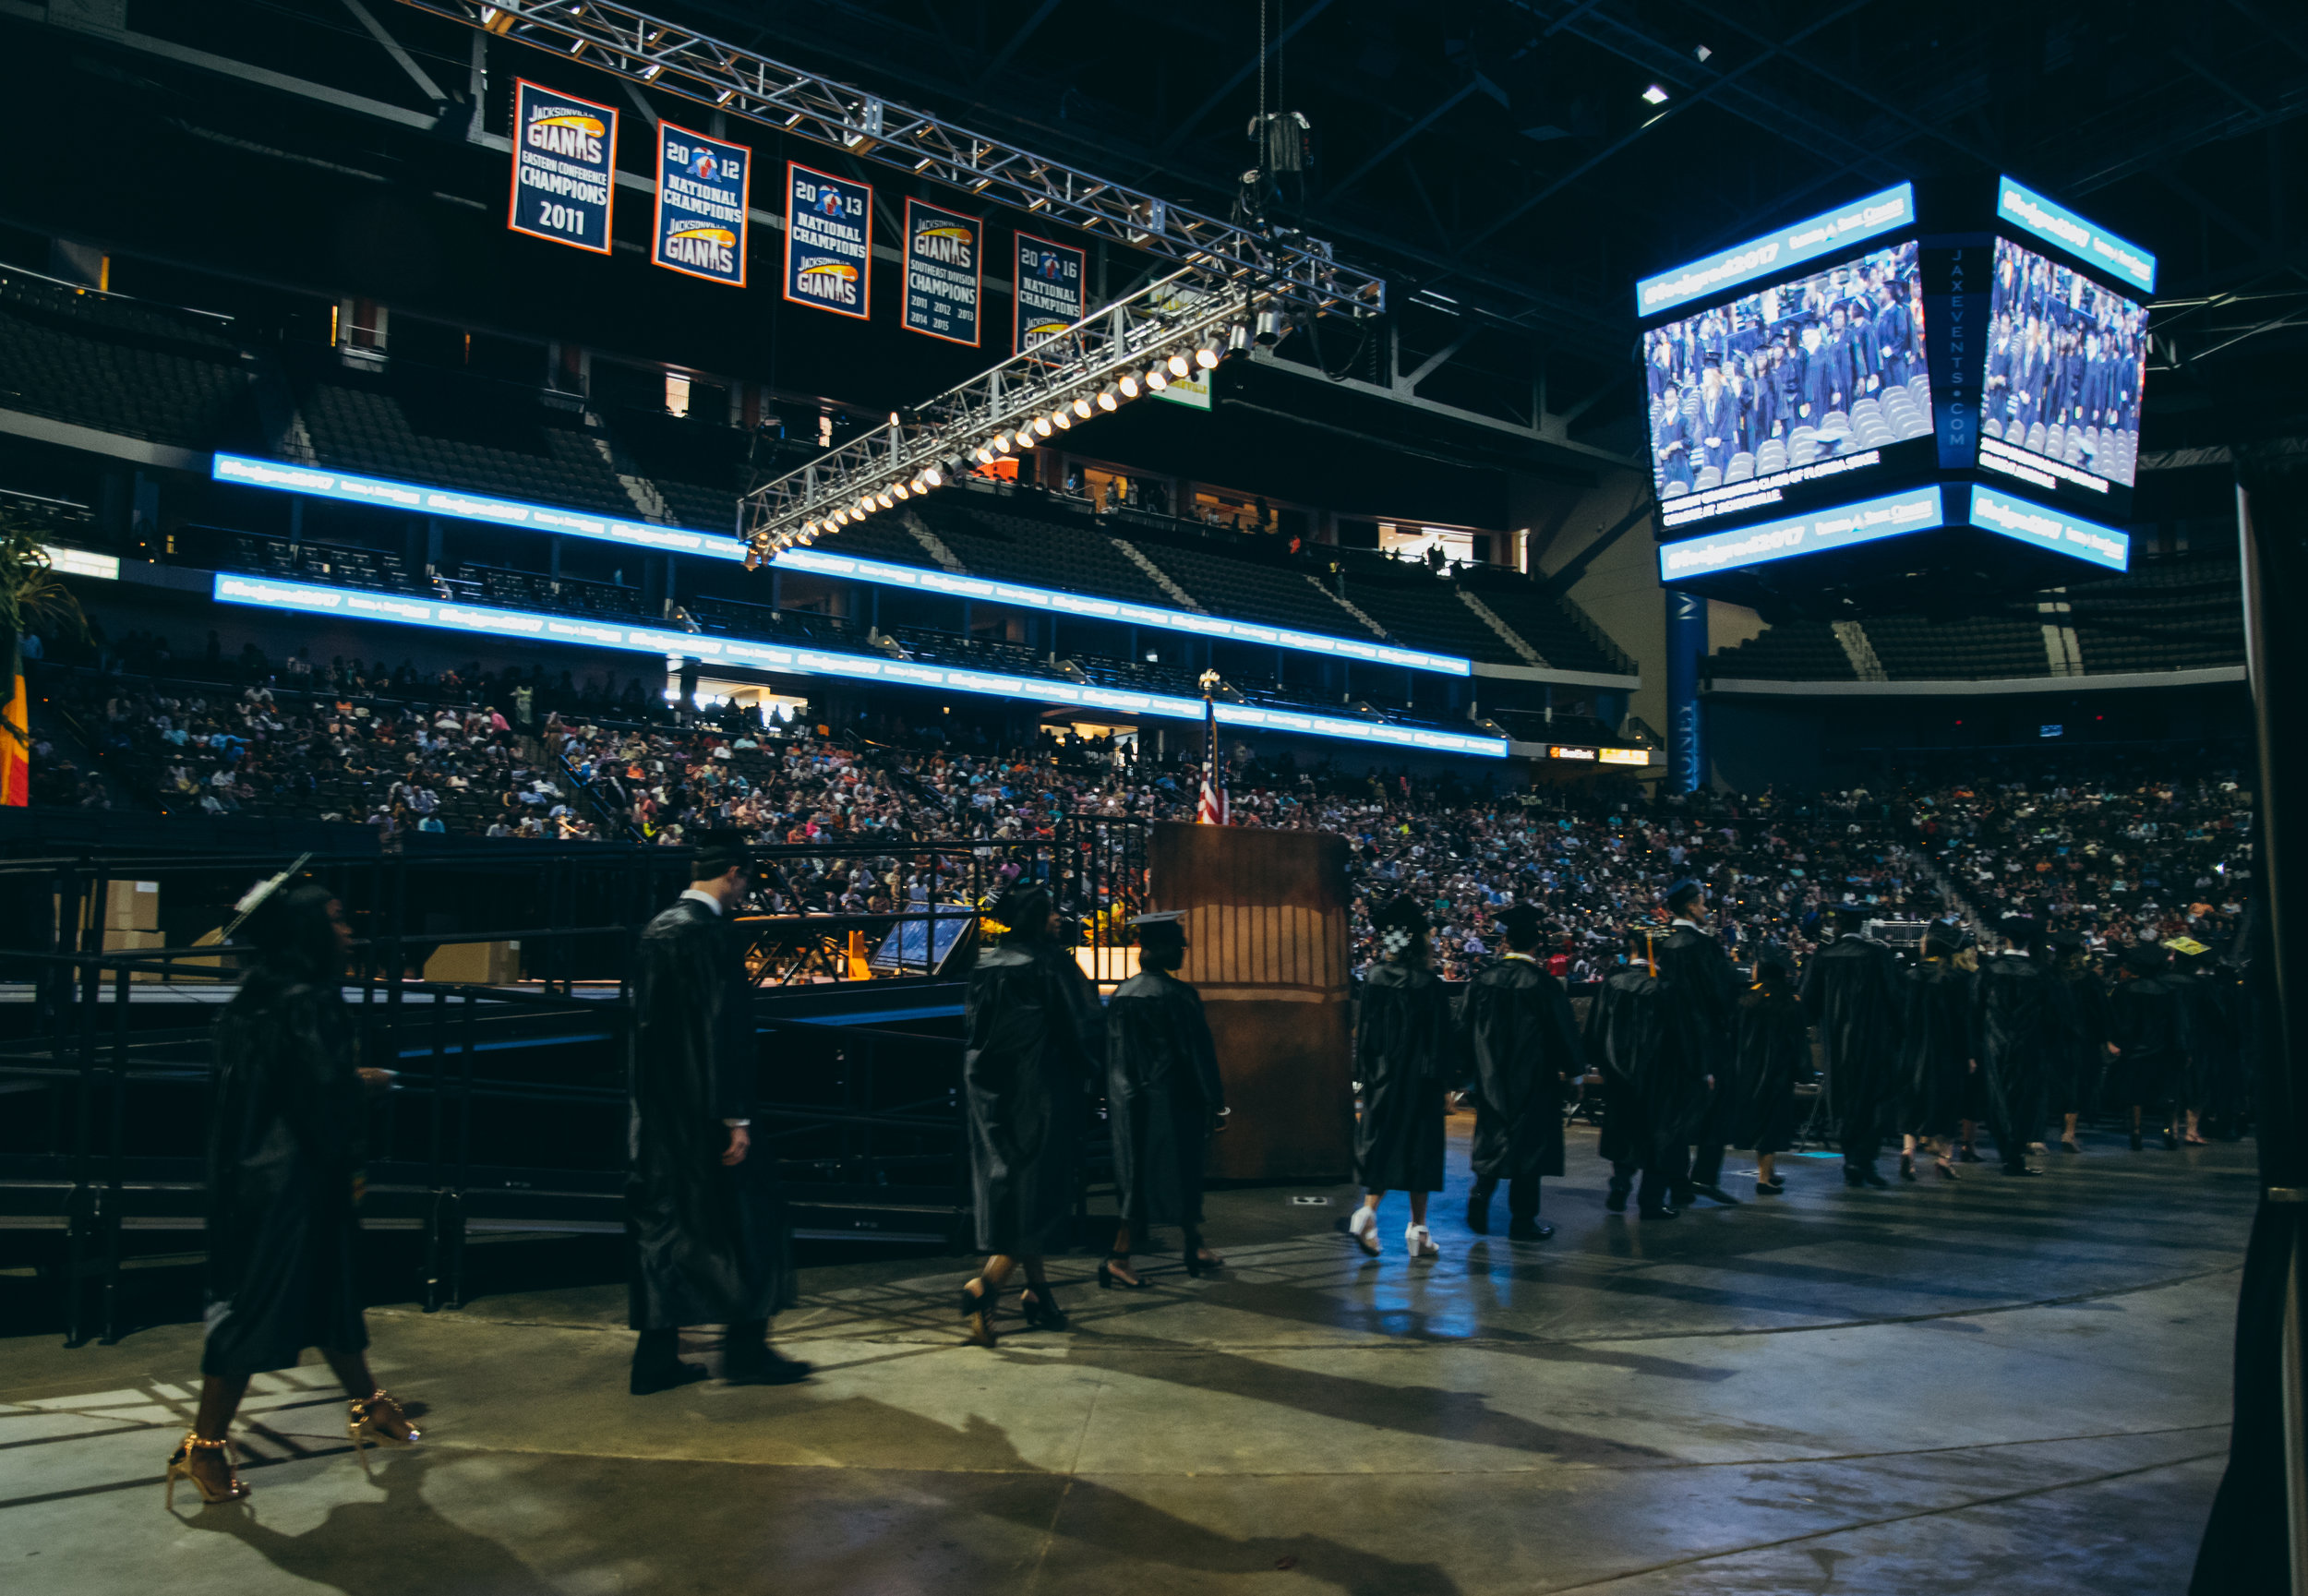 The graduates begin to enter the arena!